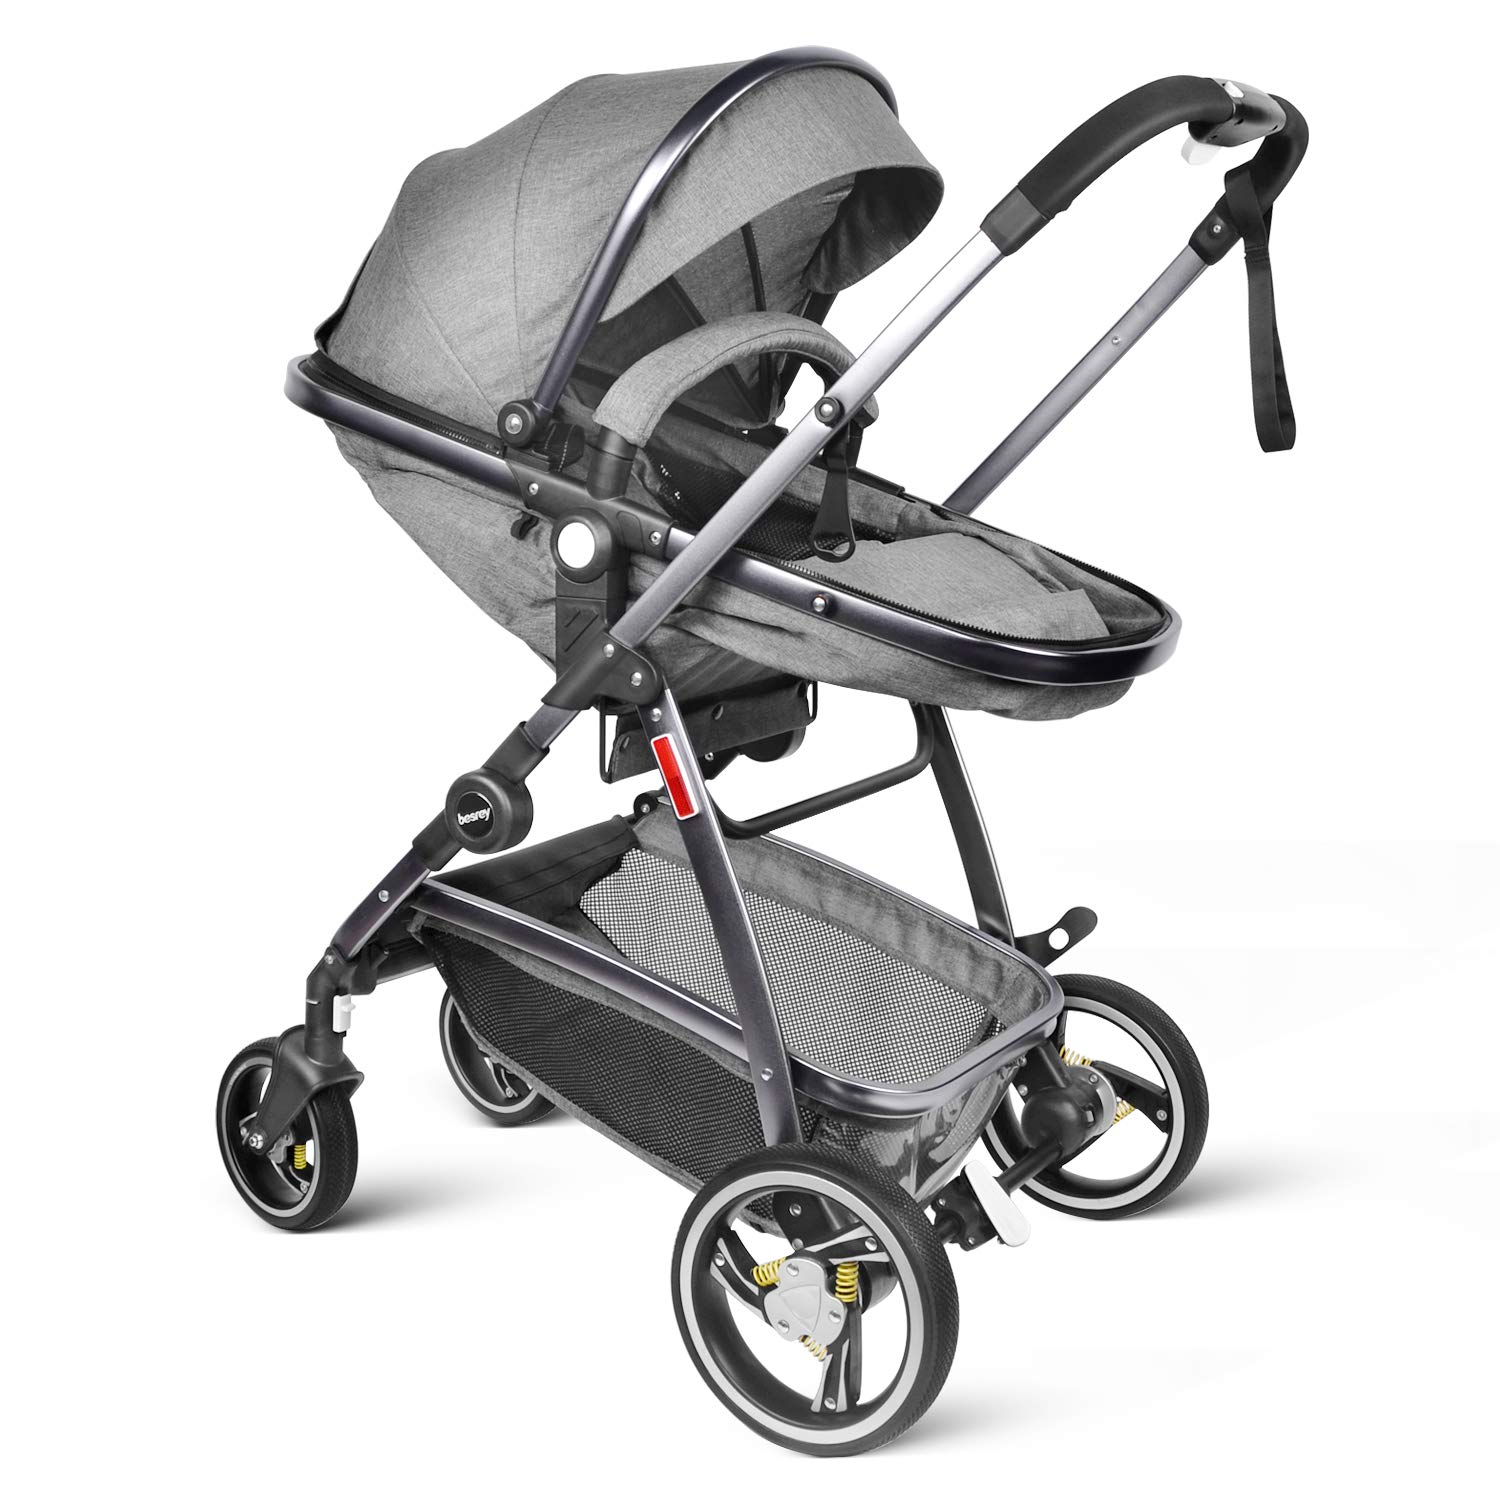 Besrey Pram Baby 2 in 1 Carriage with Convertible Reversible Bassinet & Shock Absorber for Infant Newborn Sit and Sleep Stroller - Gray by besrey